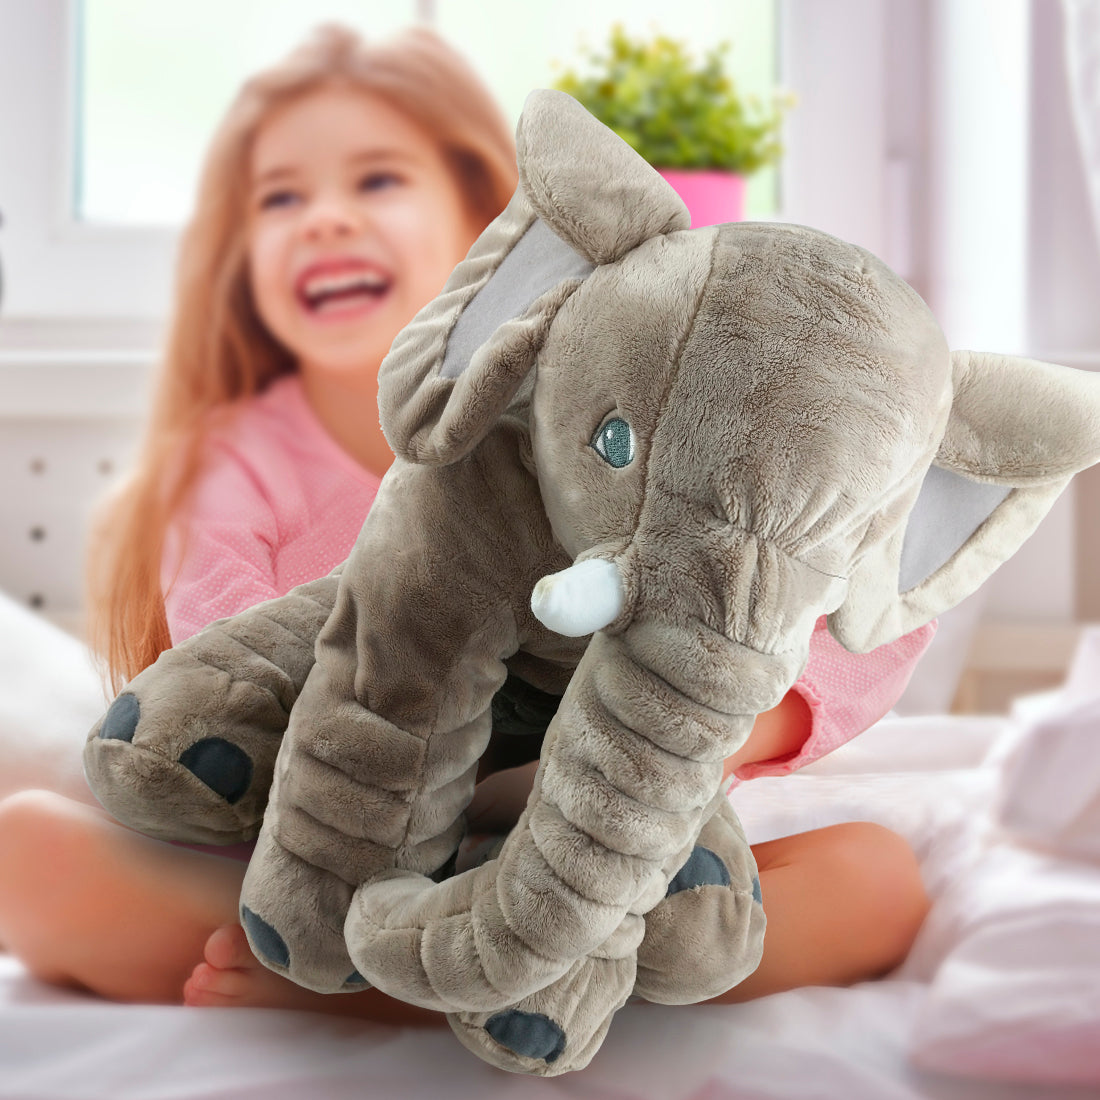 Large Adorable Stuffed Elephant Toy - Cute Soft Plush Cuddly Fabric Pillow